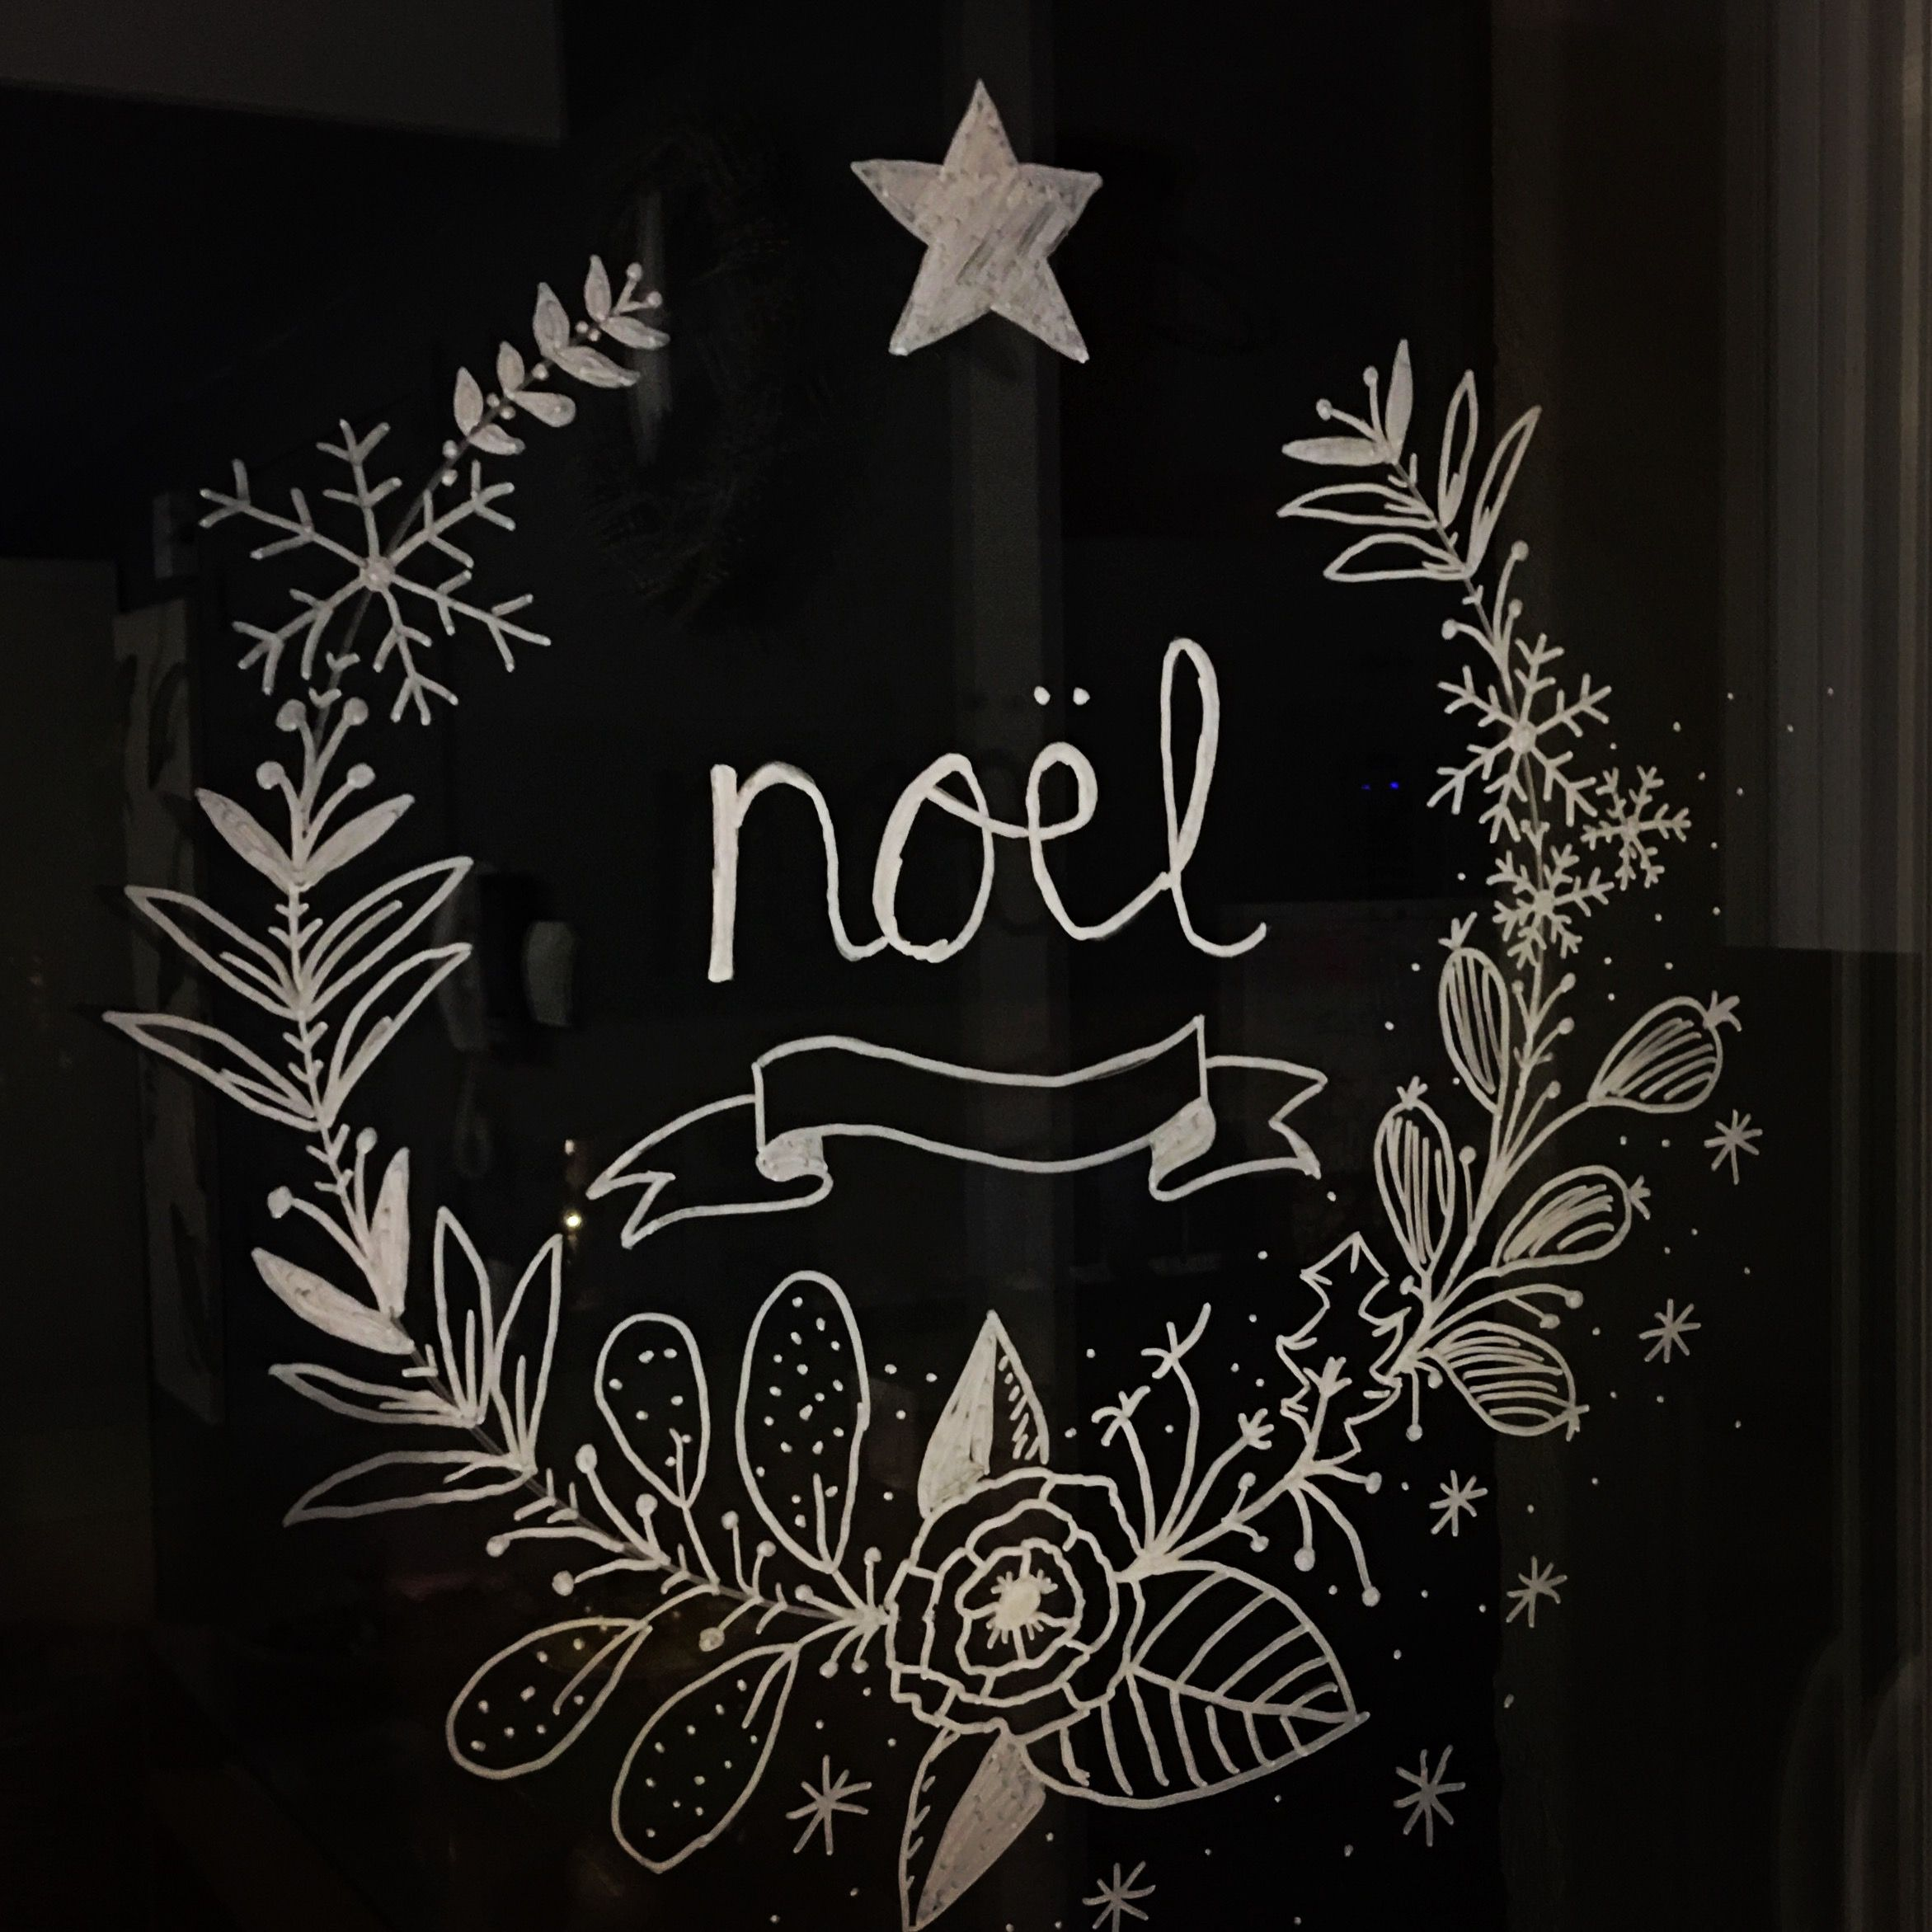 Decoration de noel dessin fenetre for Decoration fenetre noel blanc